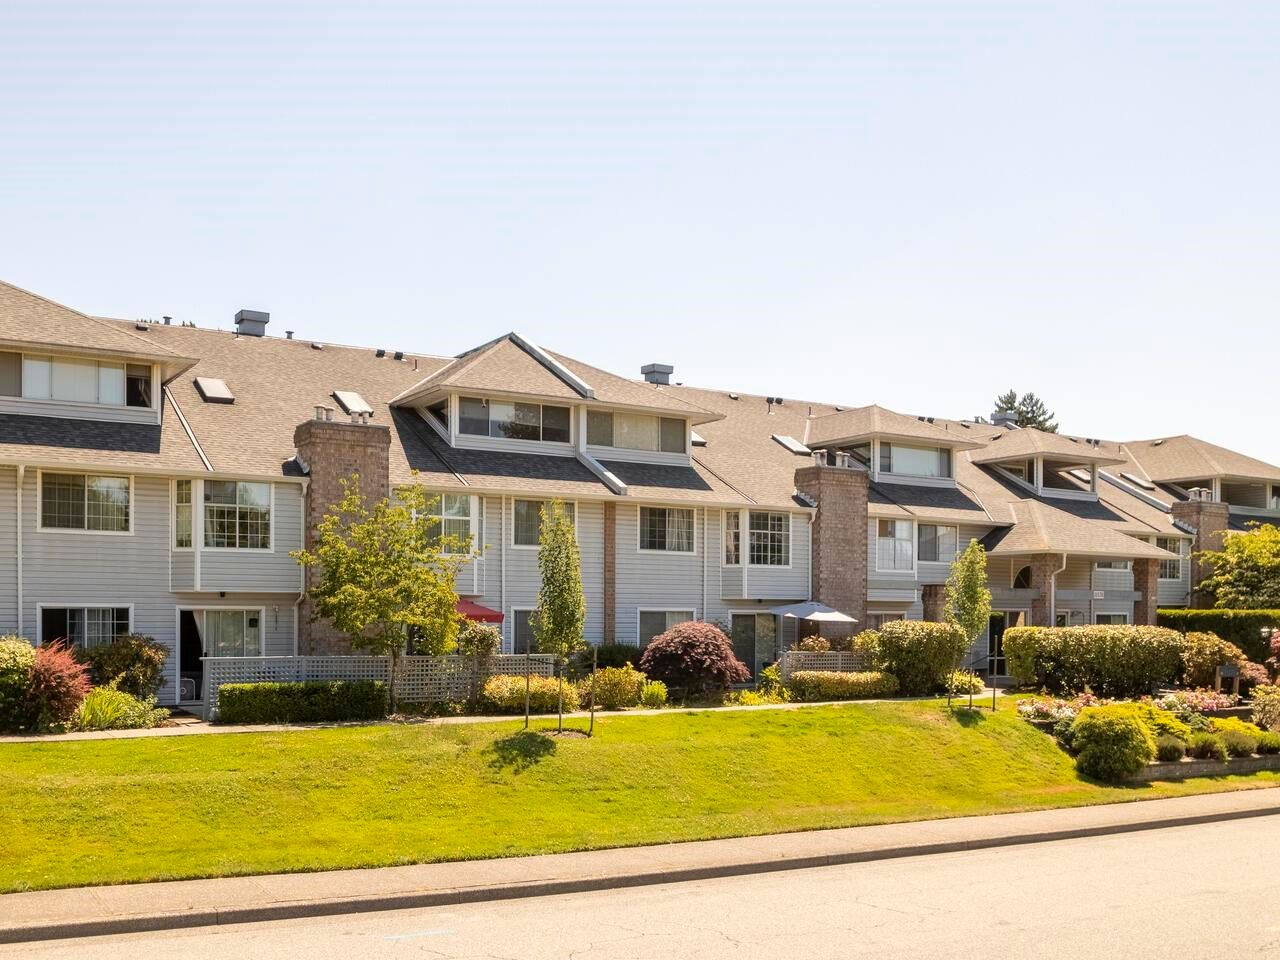 """Main Photo: 103 11578 225 Street in Maple Ridge: East Central Condo for sale in """"Willows"""" : MLS®# R2598276"""